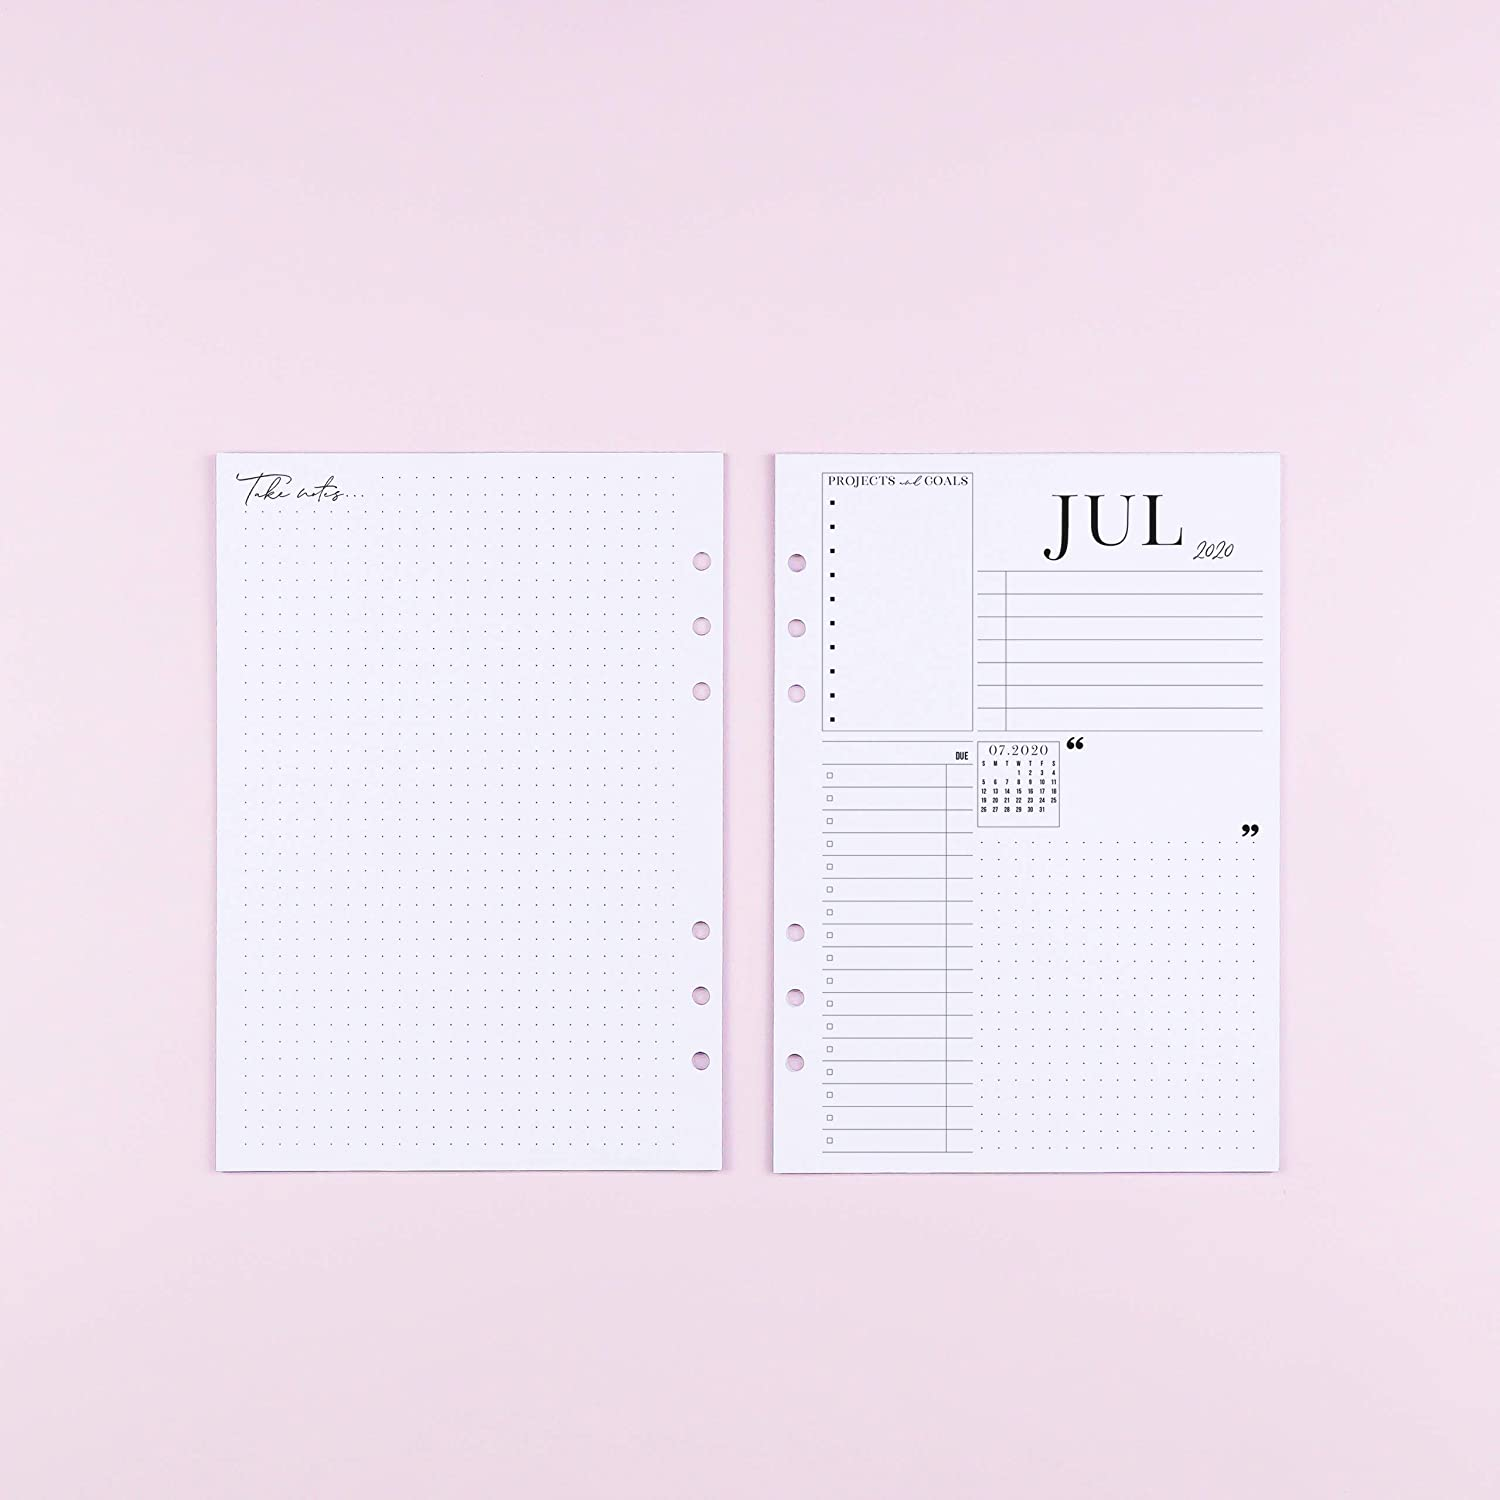 Size 5 Planner not included 5.83x8.27 inches 2020 Dated Weekly Refill Pages for A5 Size Ring Bound Systems Monthly Planner Inserts